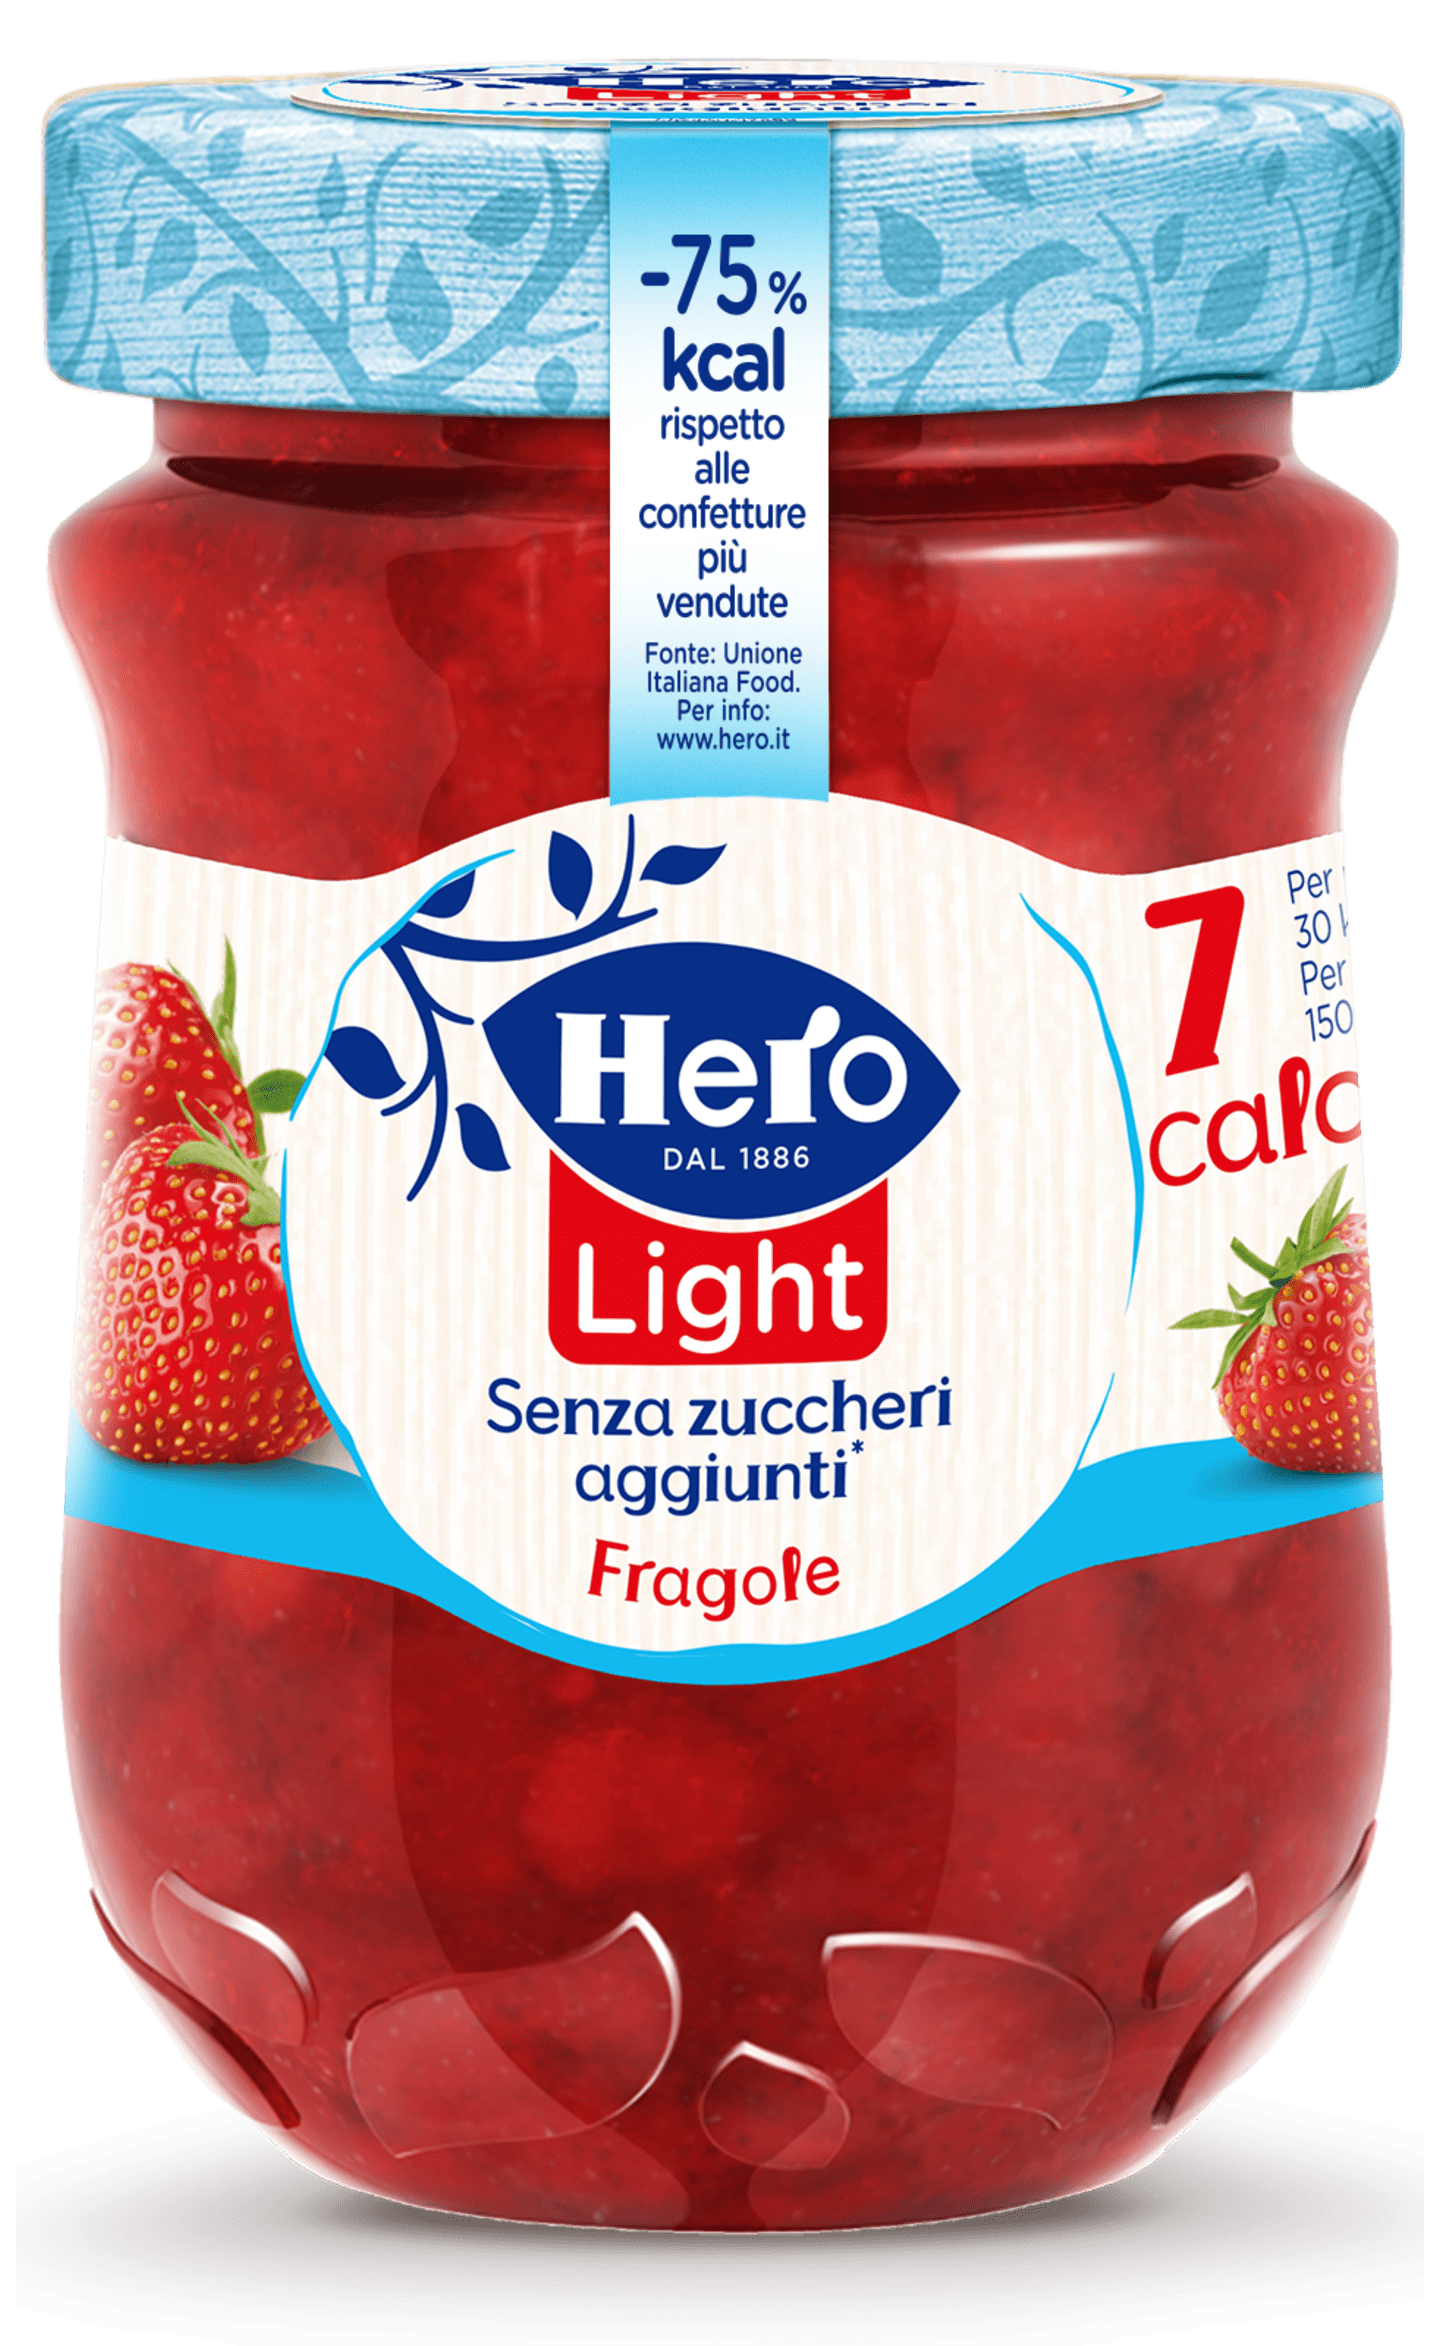 Marmellata di fragole hero light